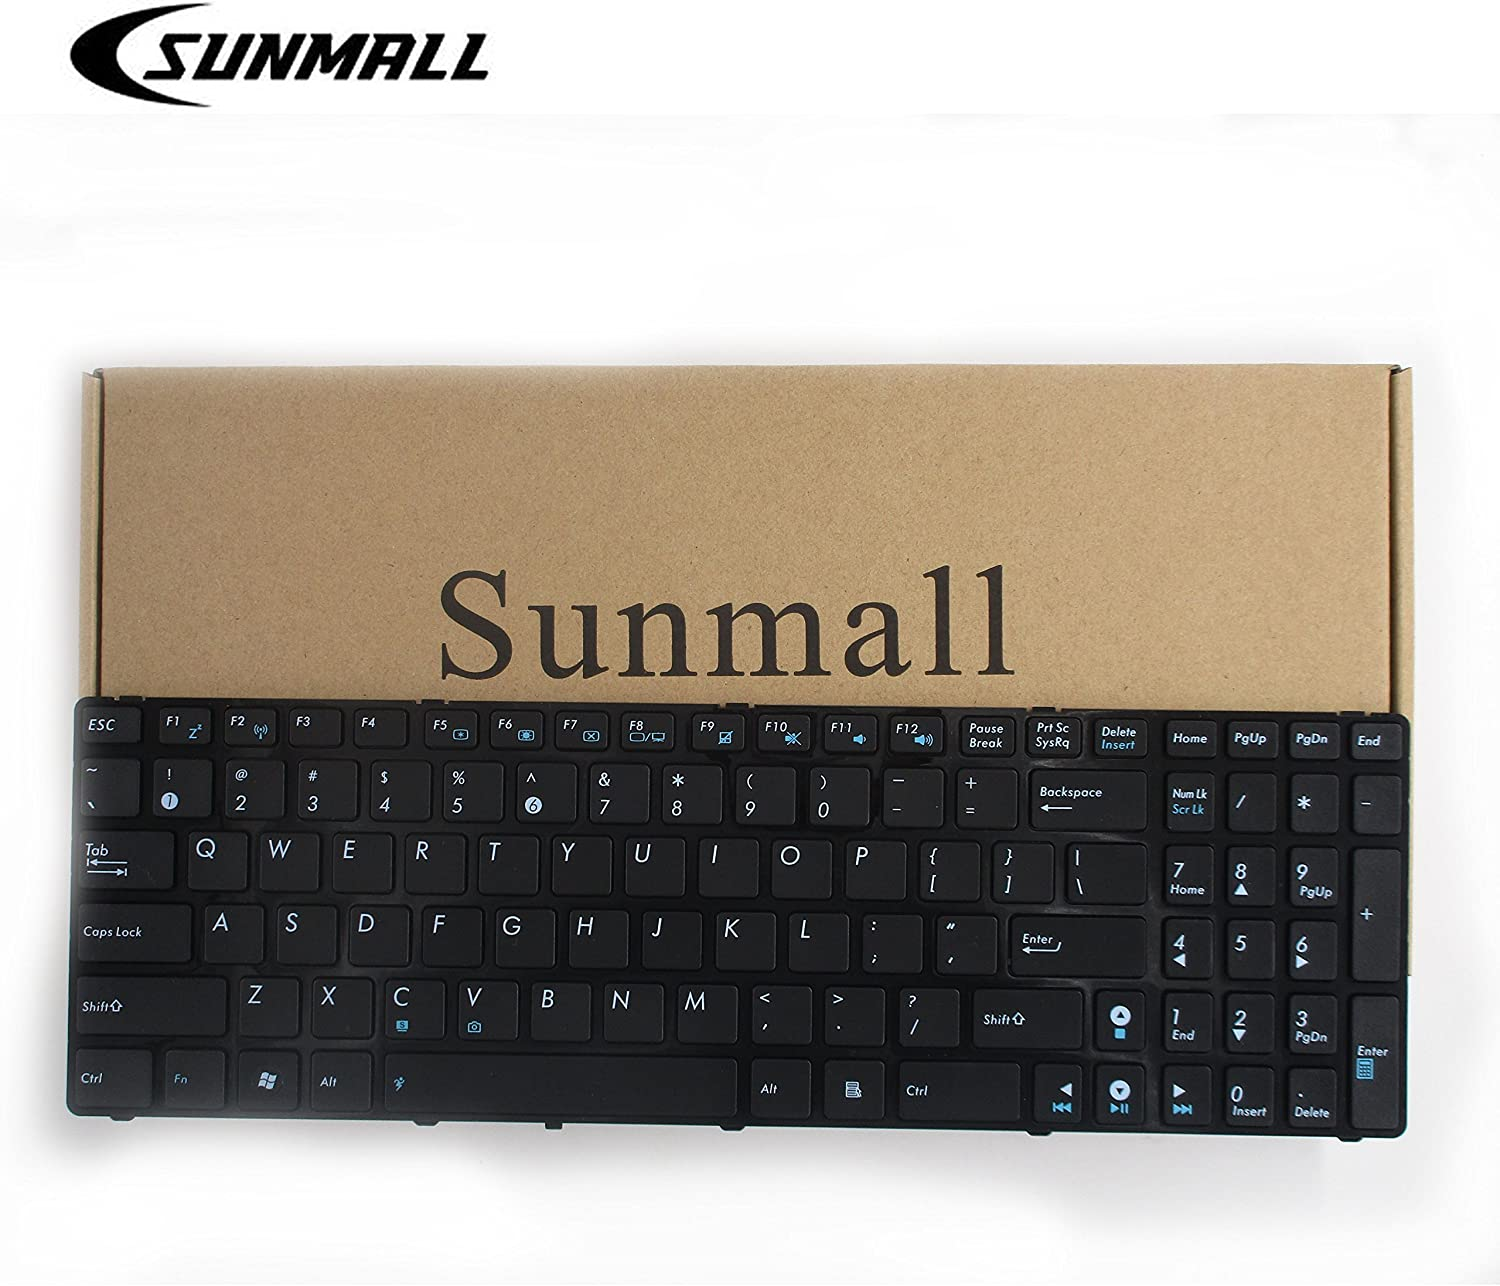 SUNMALL Keyboard Replacement Without Backlit Compatible with A52 F50 X53E A53S K53 K53S K54 G73S X73E Series Laptop Black US Layout